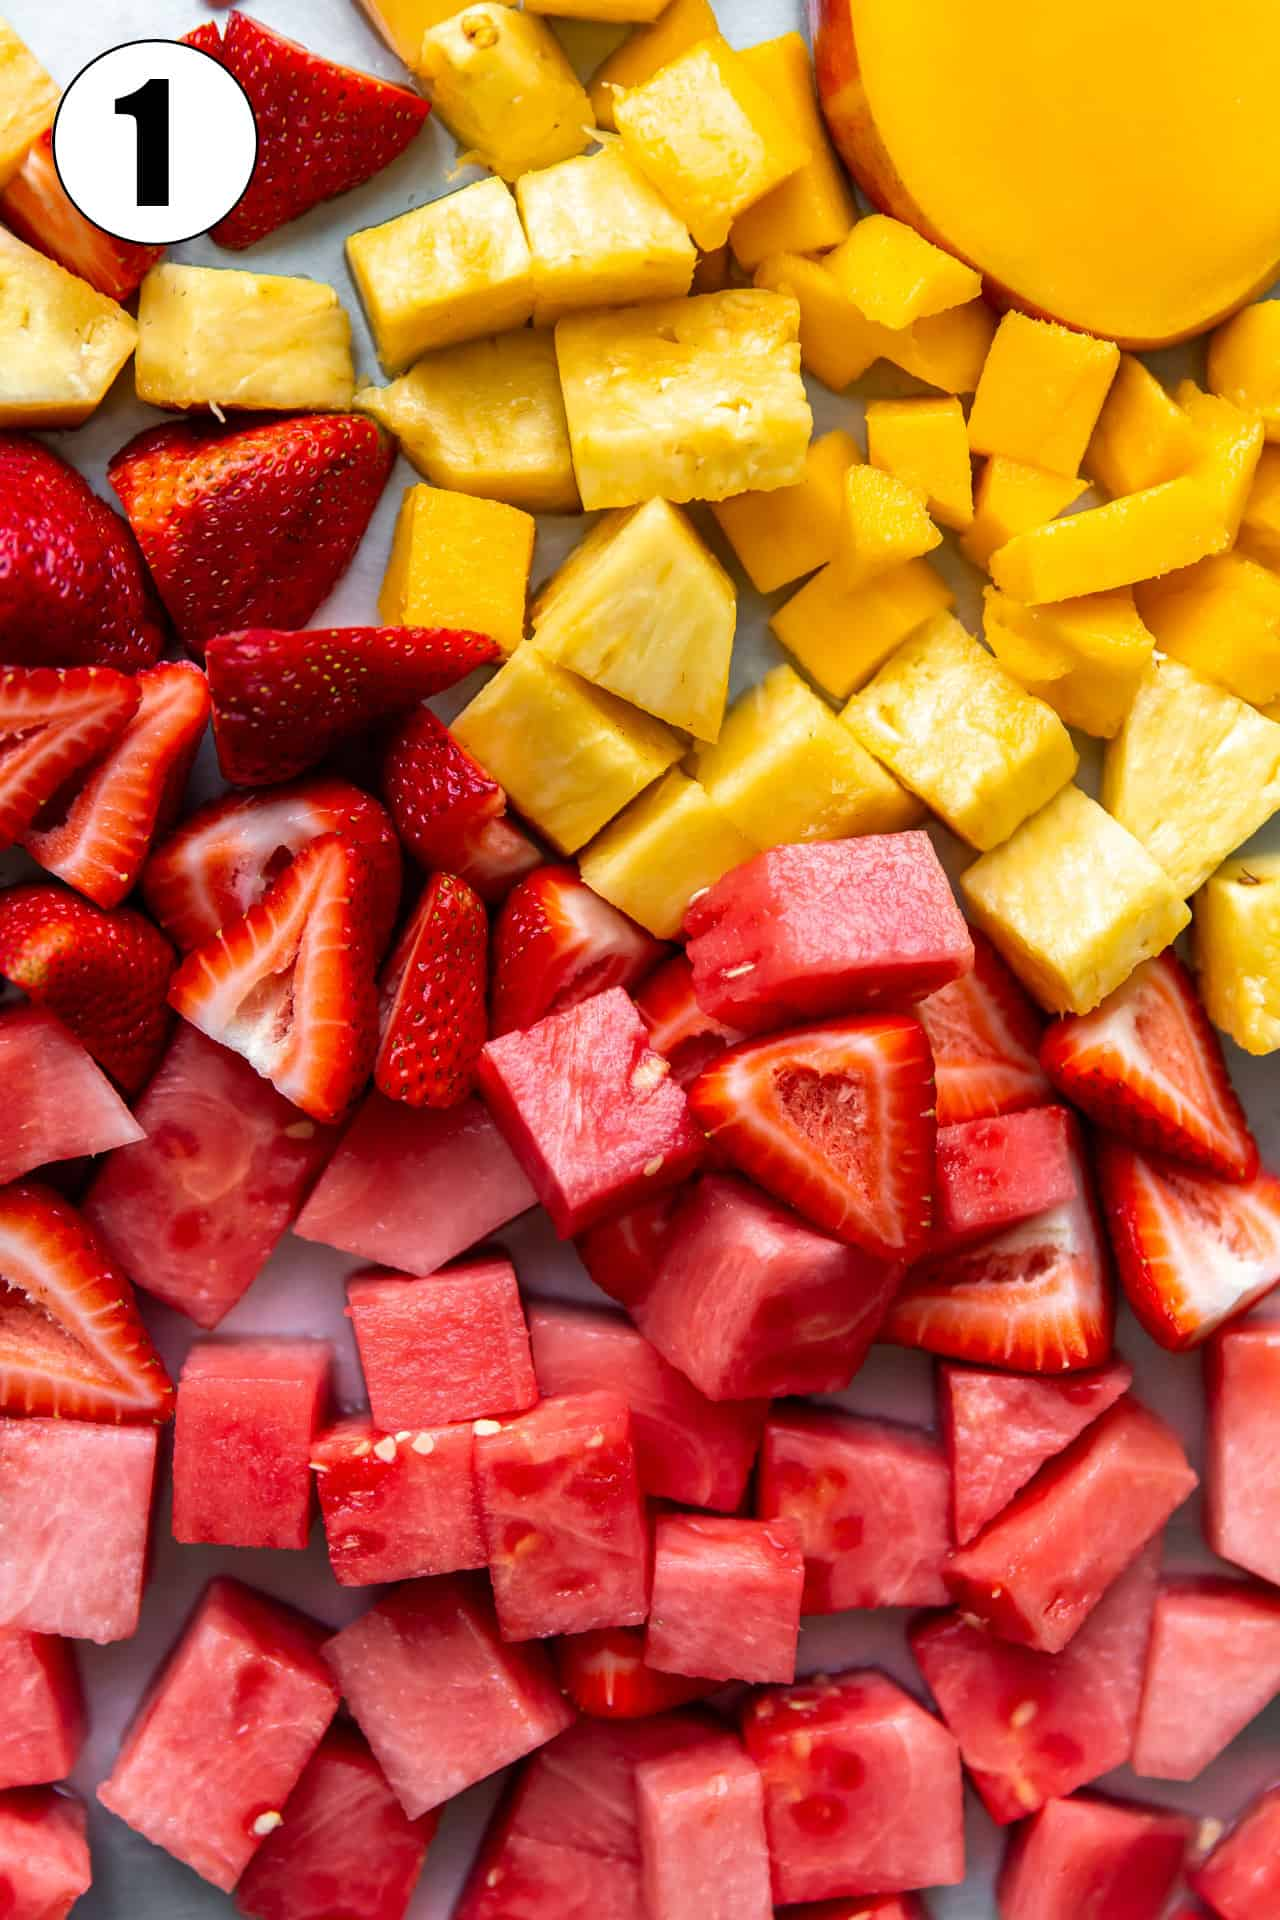 Chopped fruits laid spread out, watermelon, strawberry and mango.